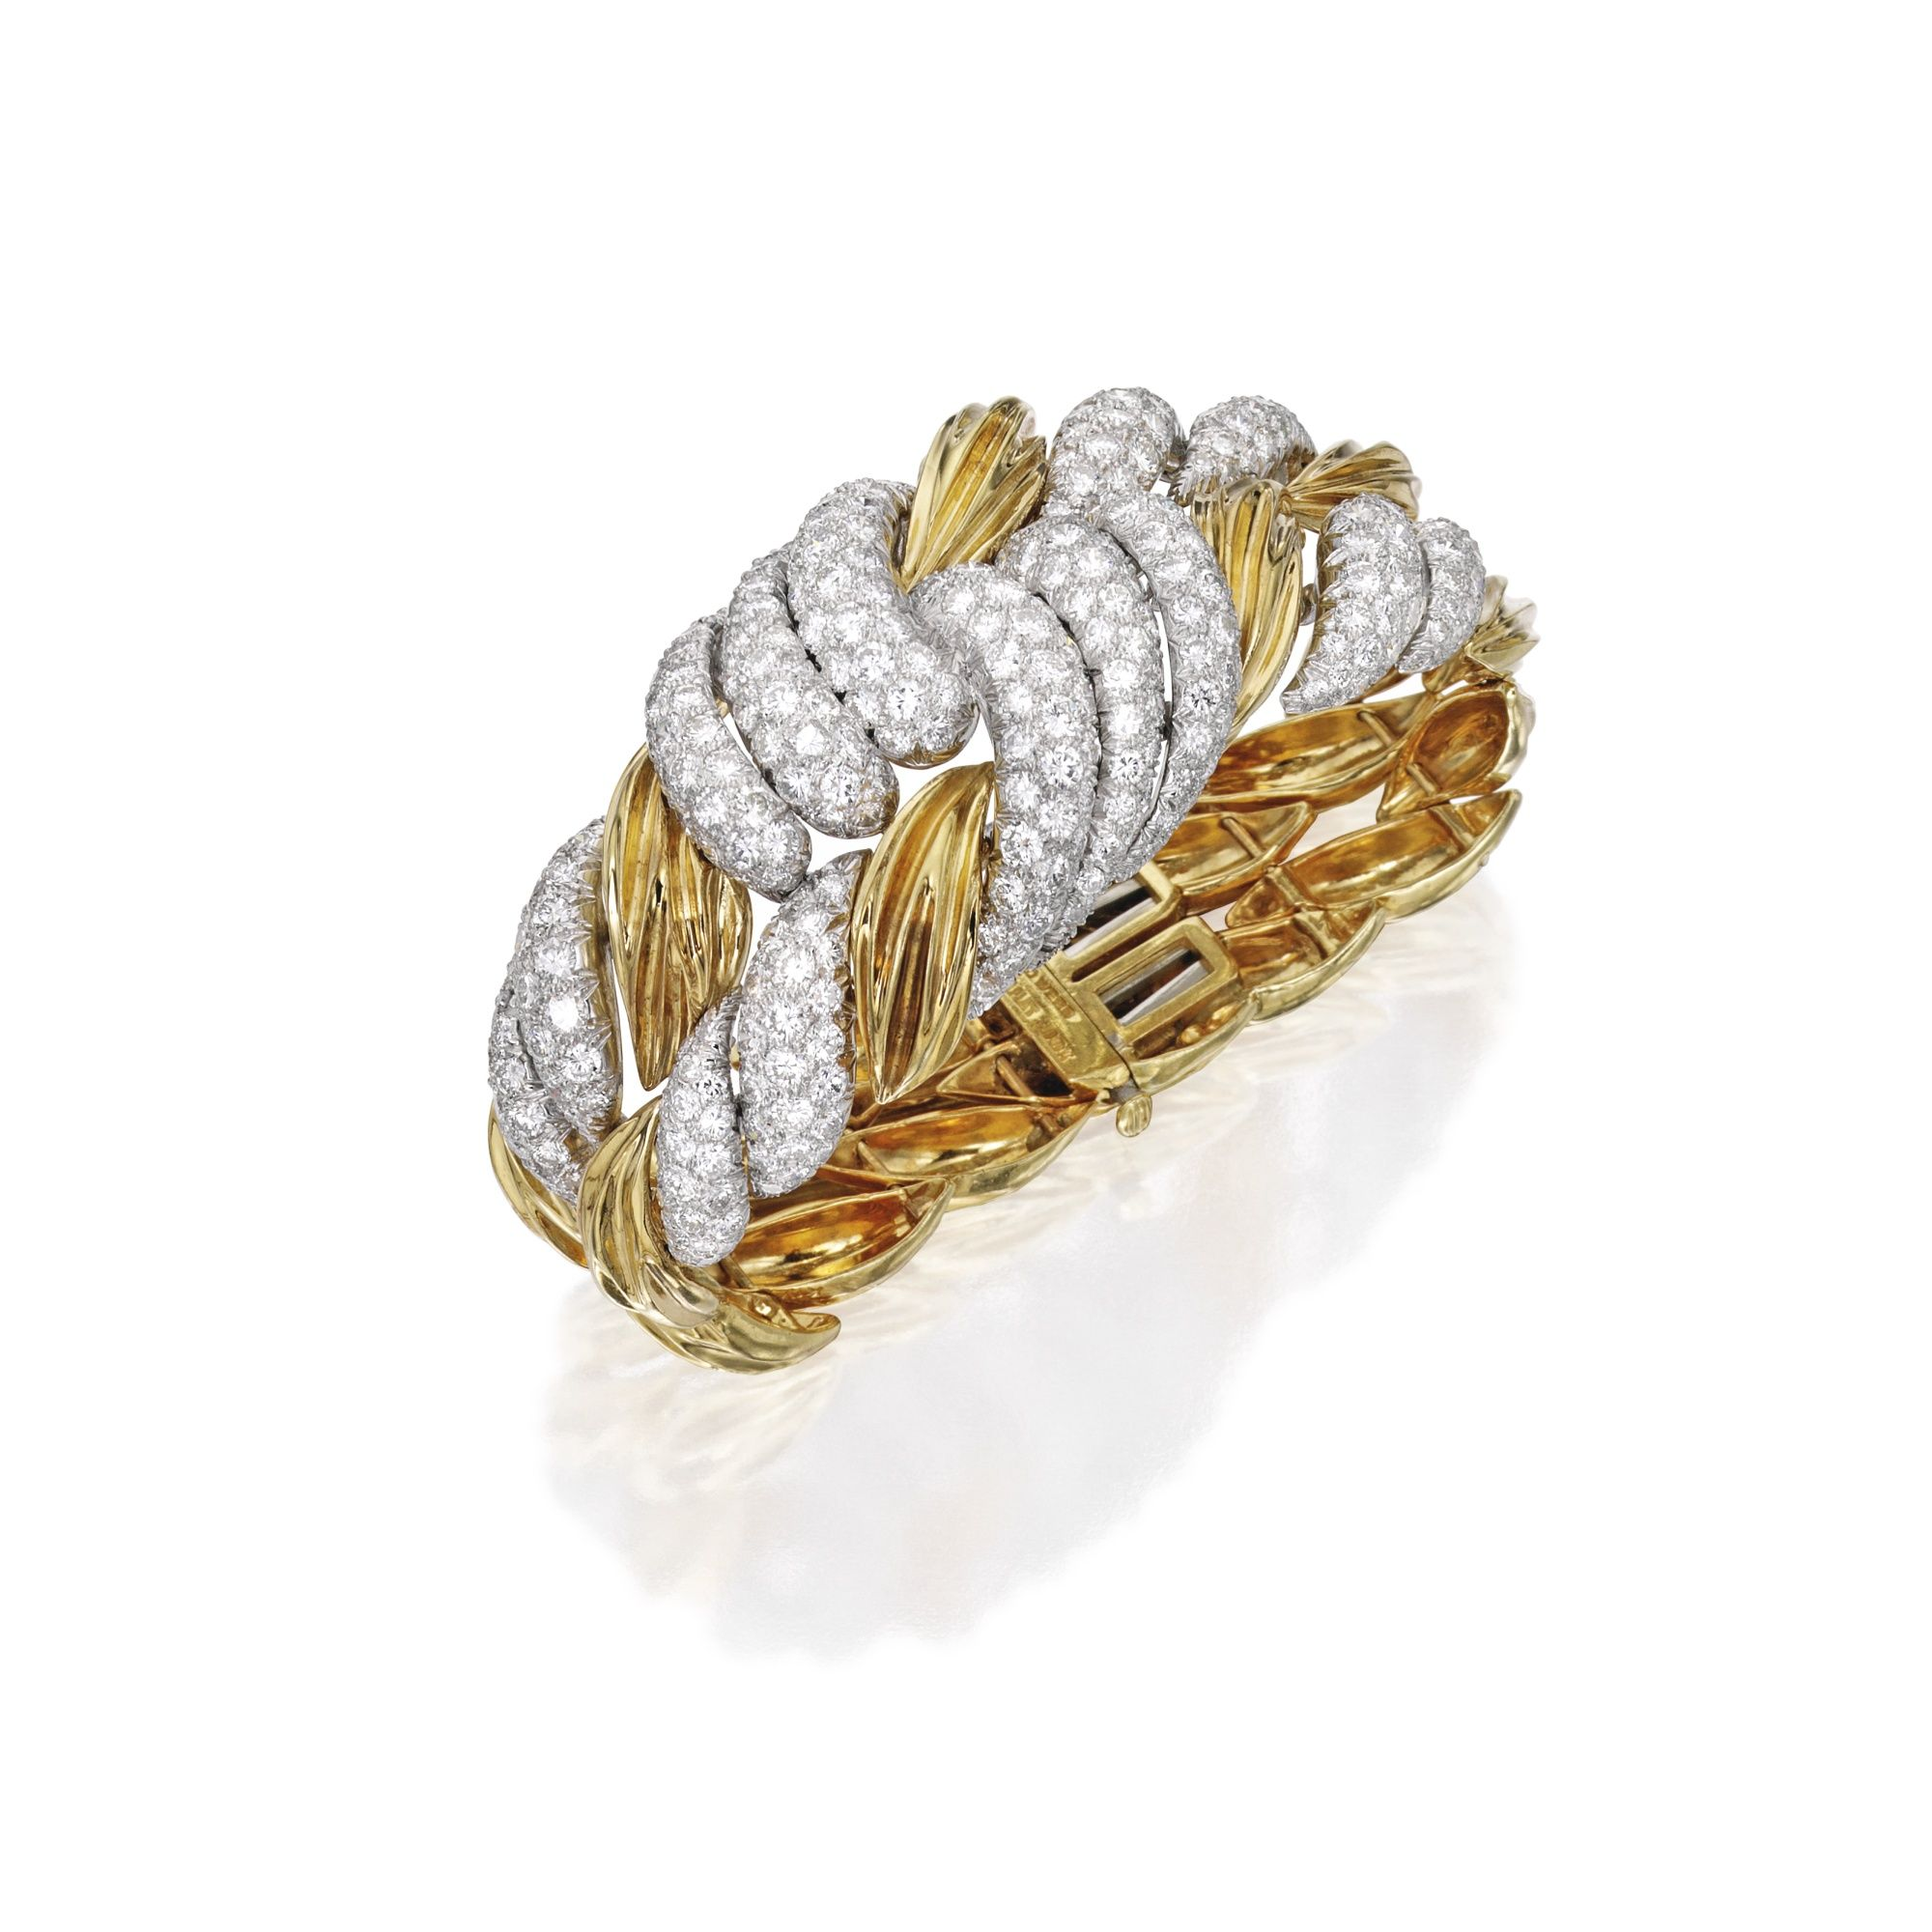 7c76b5ad9a5 18 KARAT GOLD, PLATINUM AND DIAMOND BRACELET, DAVID WEBB Of twisted design,  set at intervals with round diamonds weighing approximately 12.50 carats,  ...